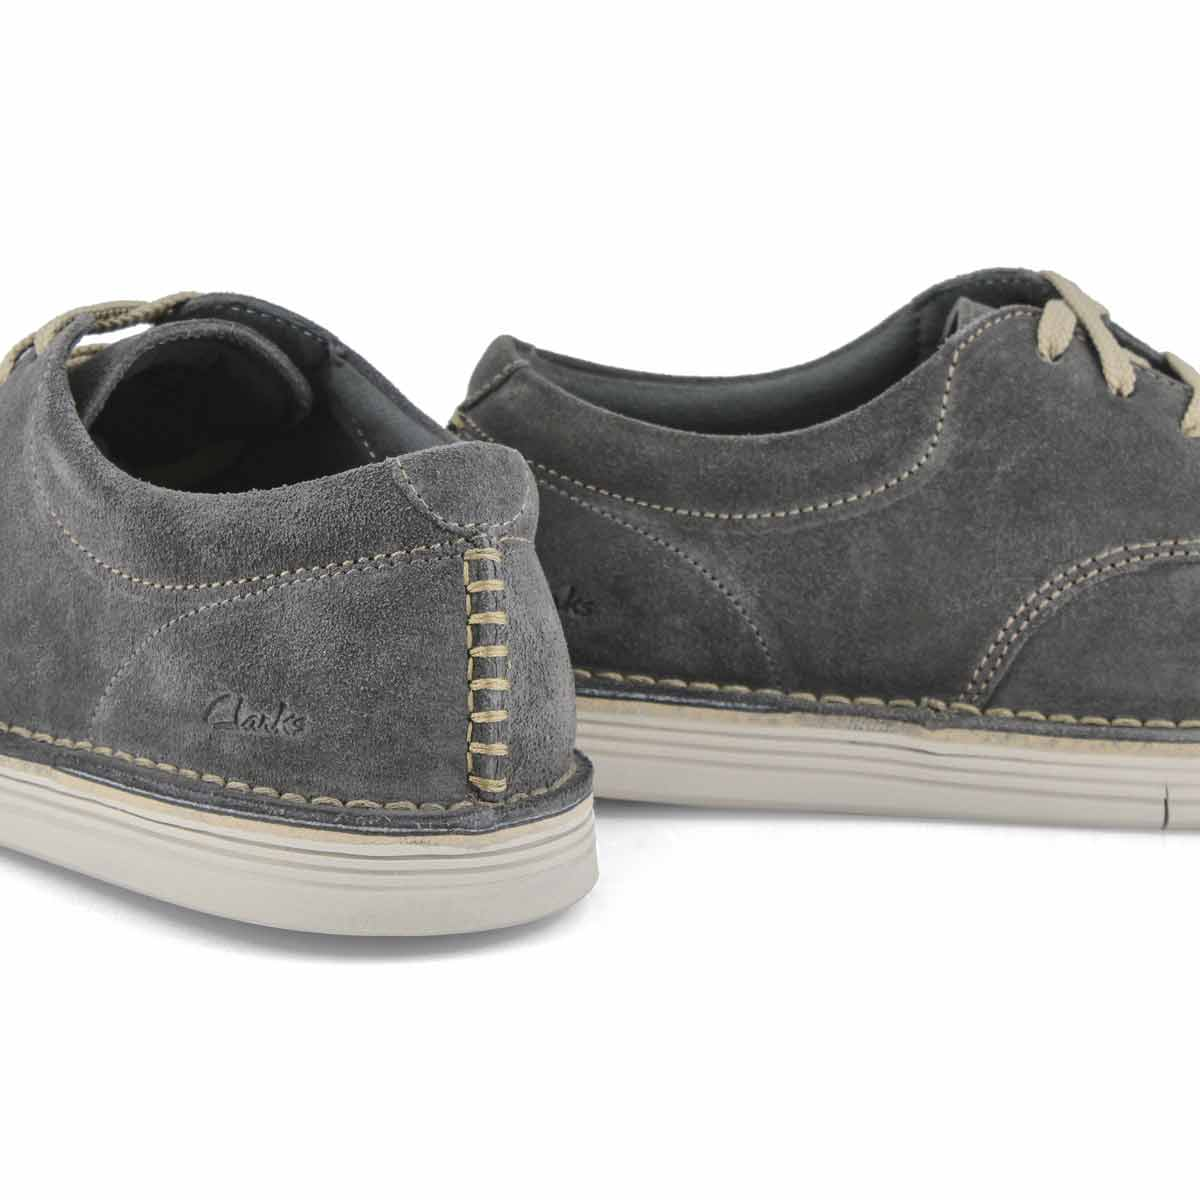 Mns Forge Vibe storm casual oxford